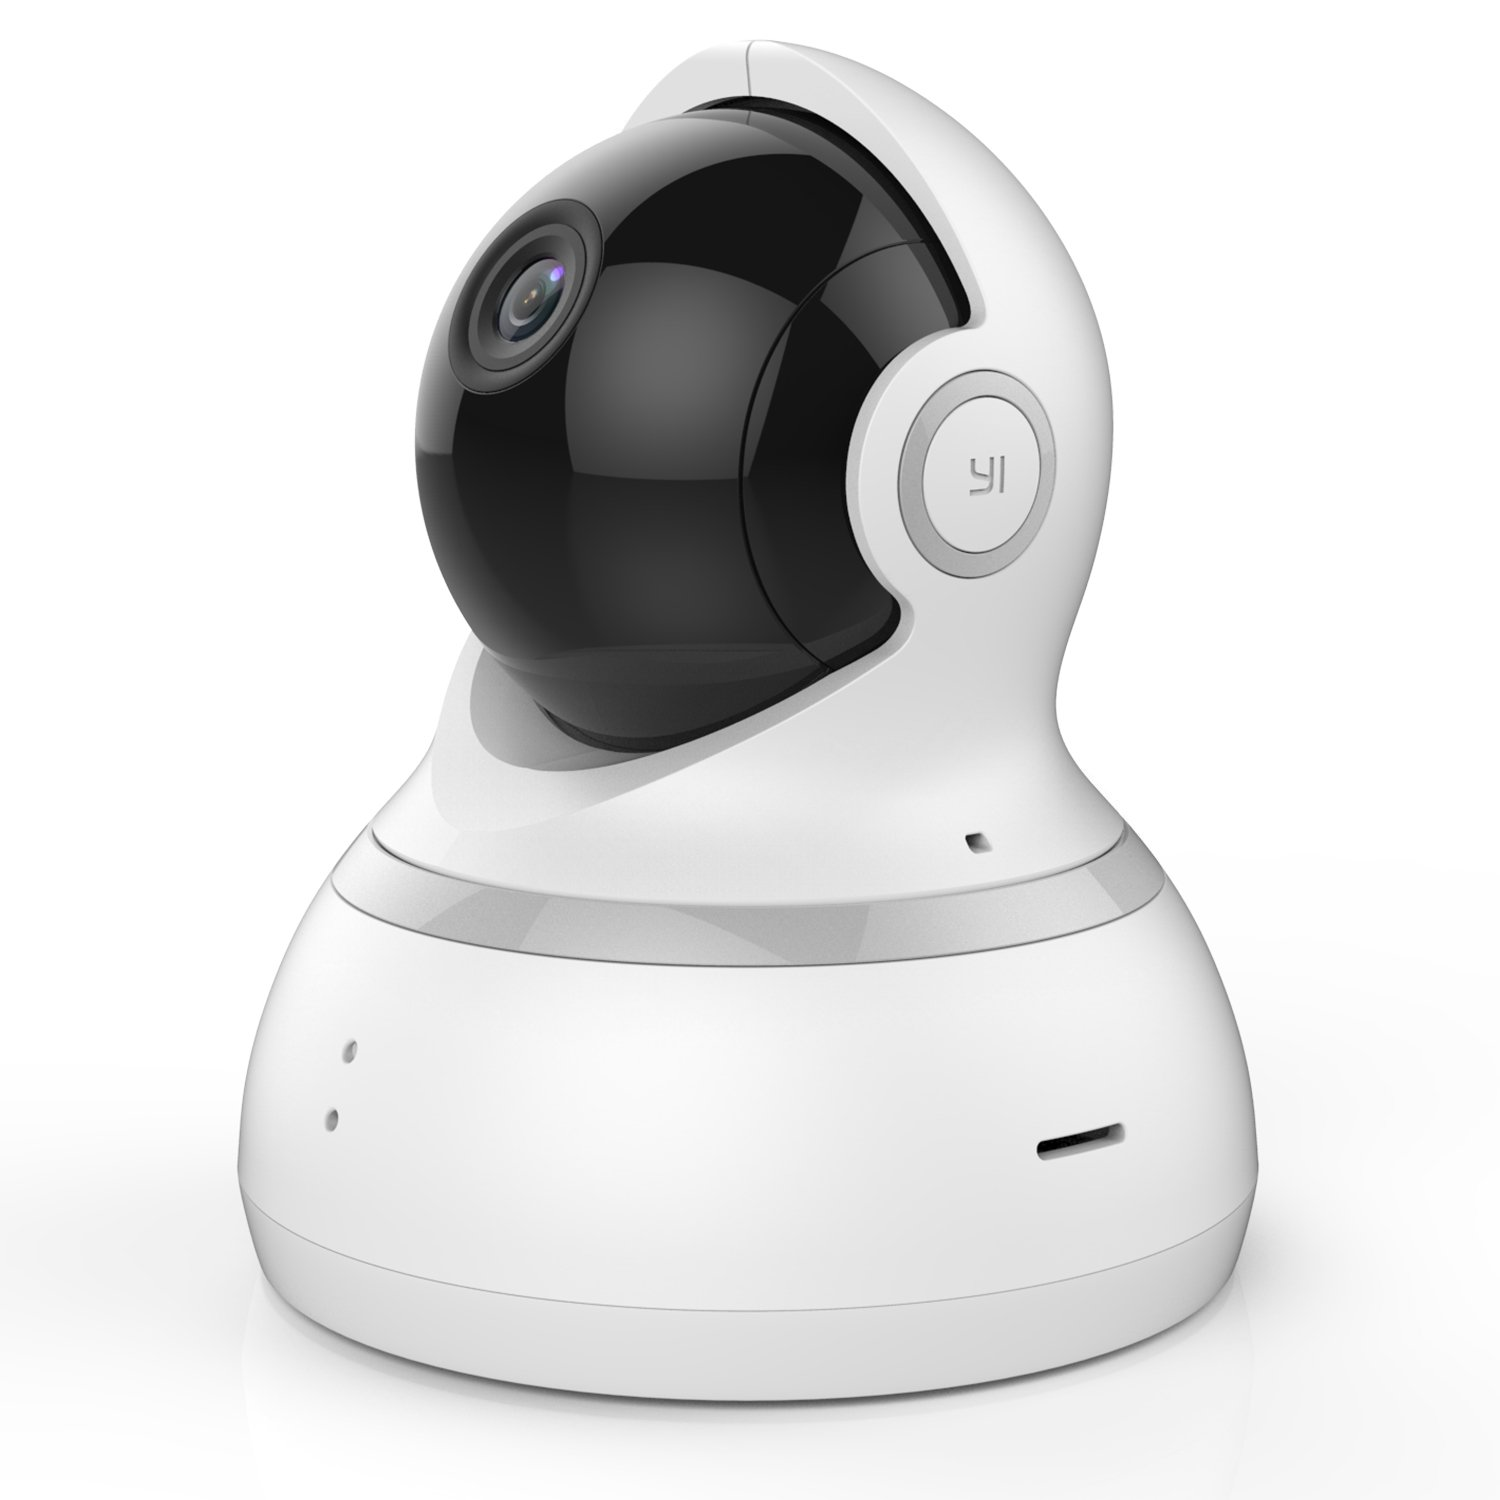 Buy Yi Dome Camera Now!